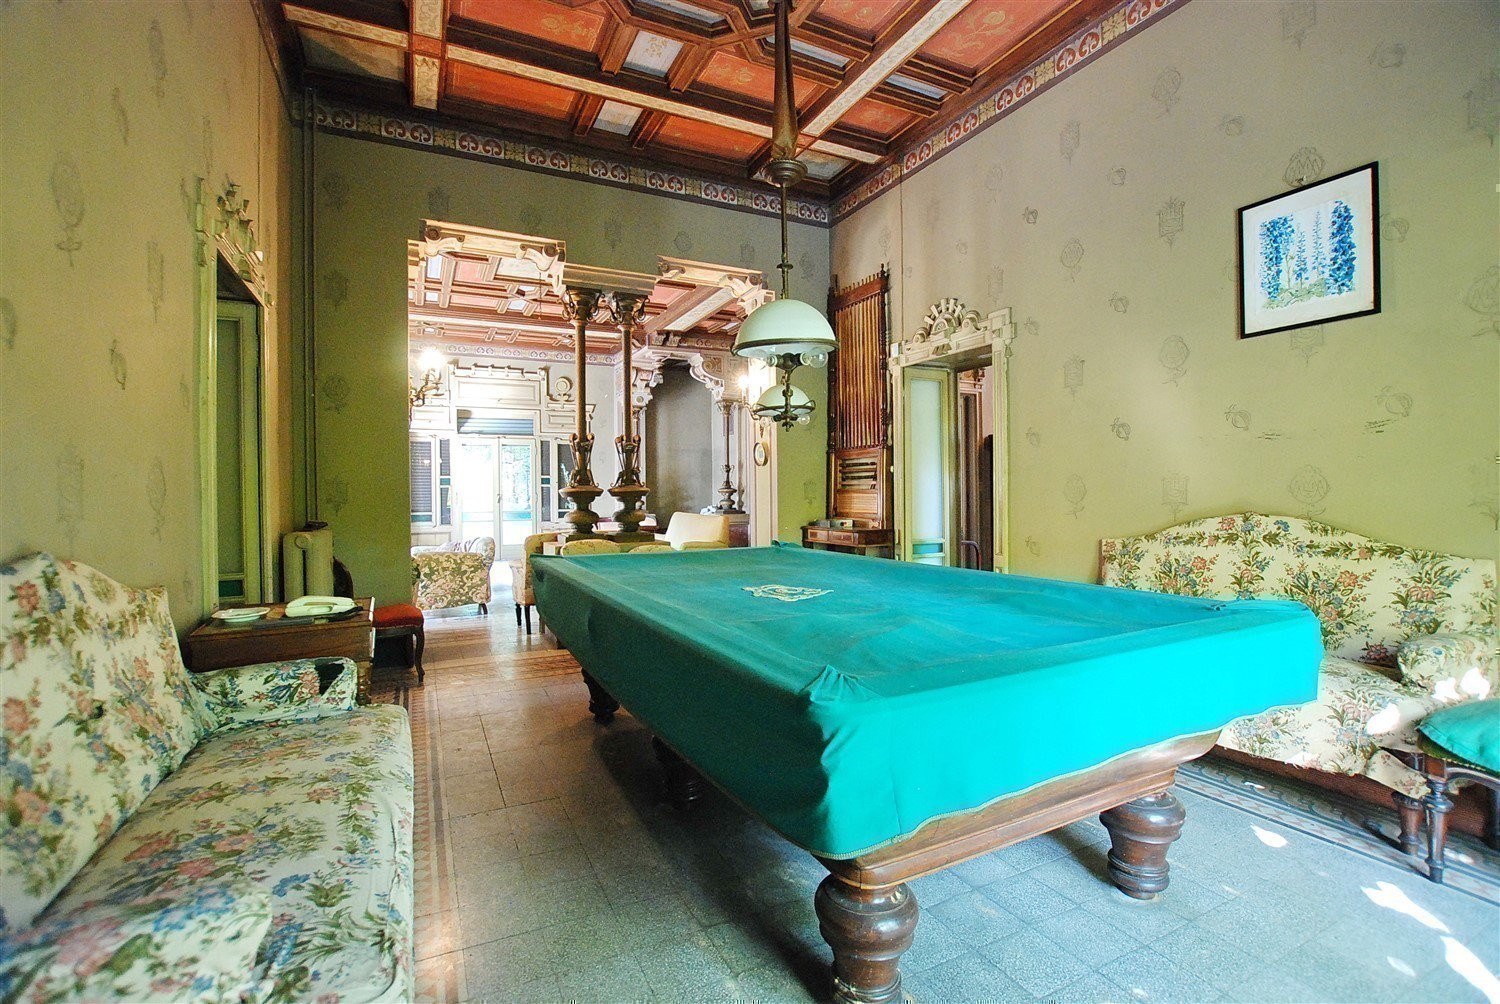 Historic villa on the shores of the Ticino river- pool room